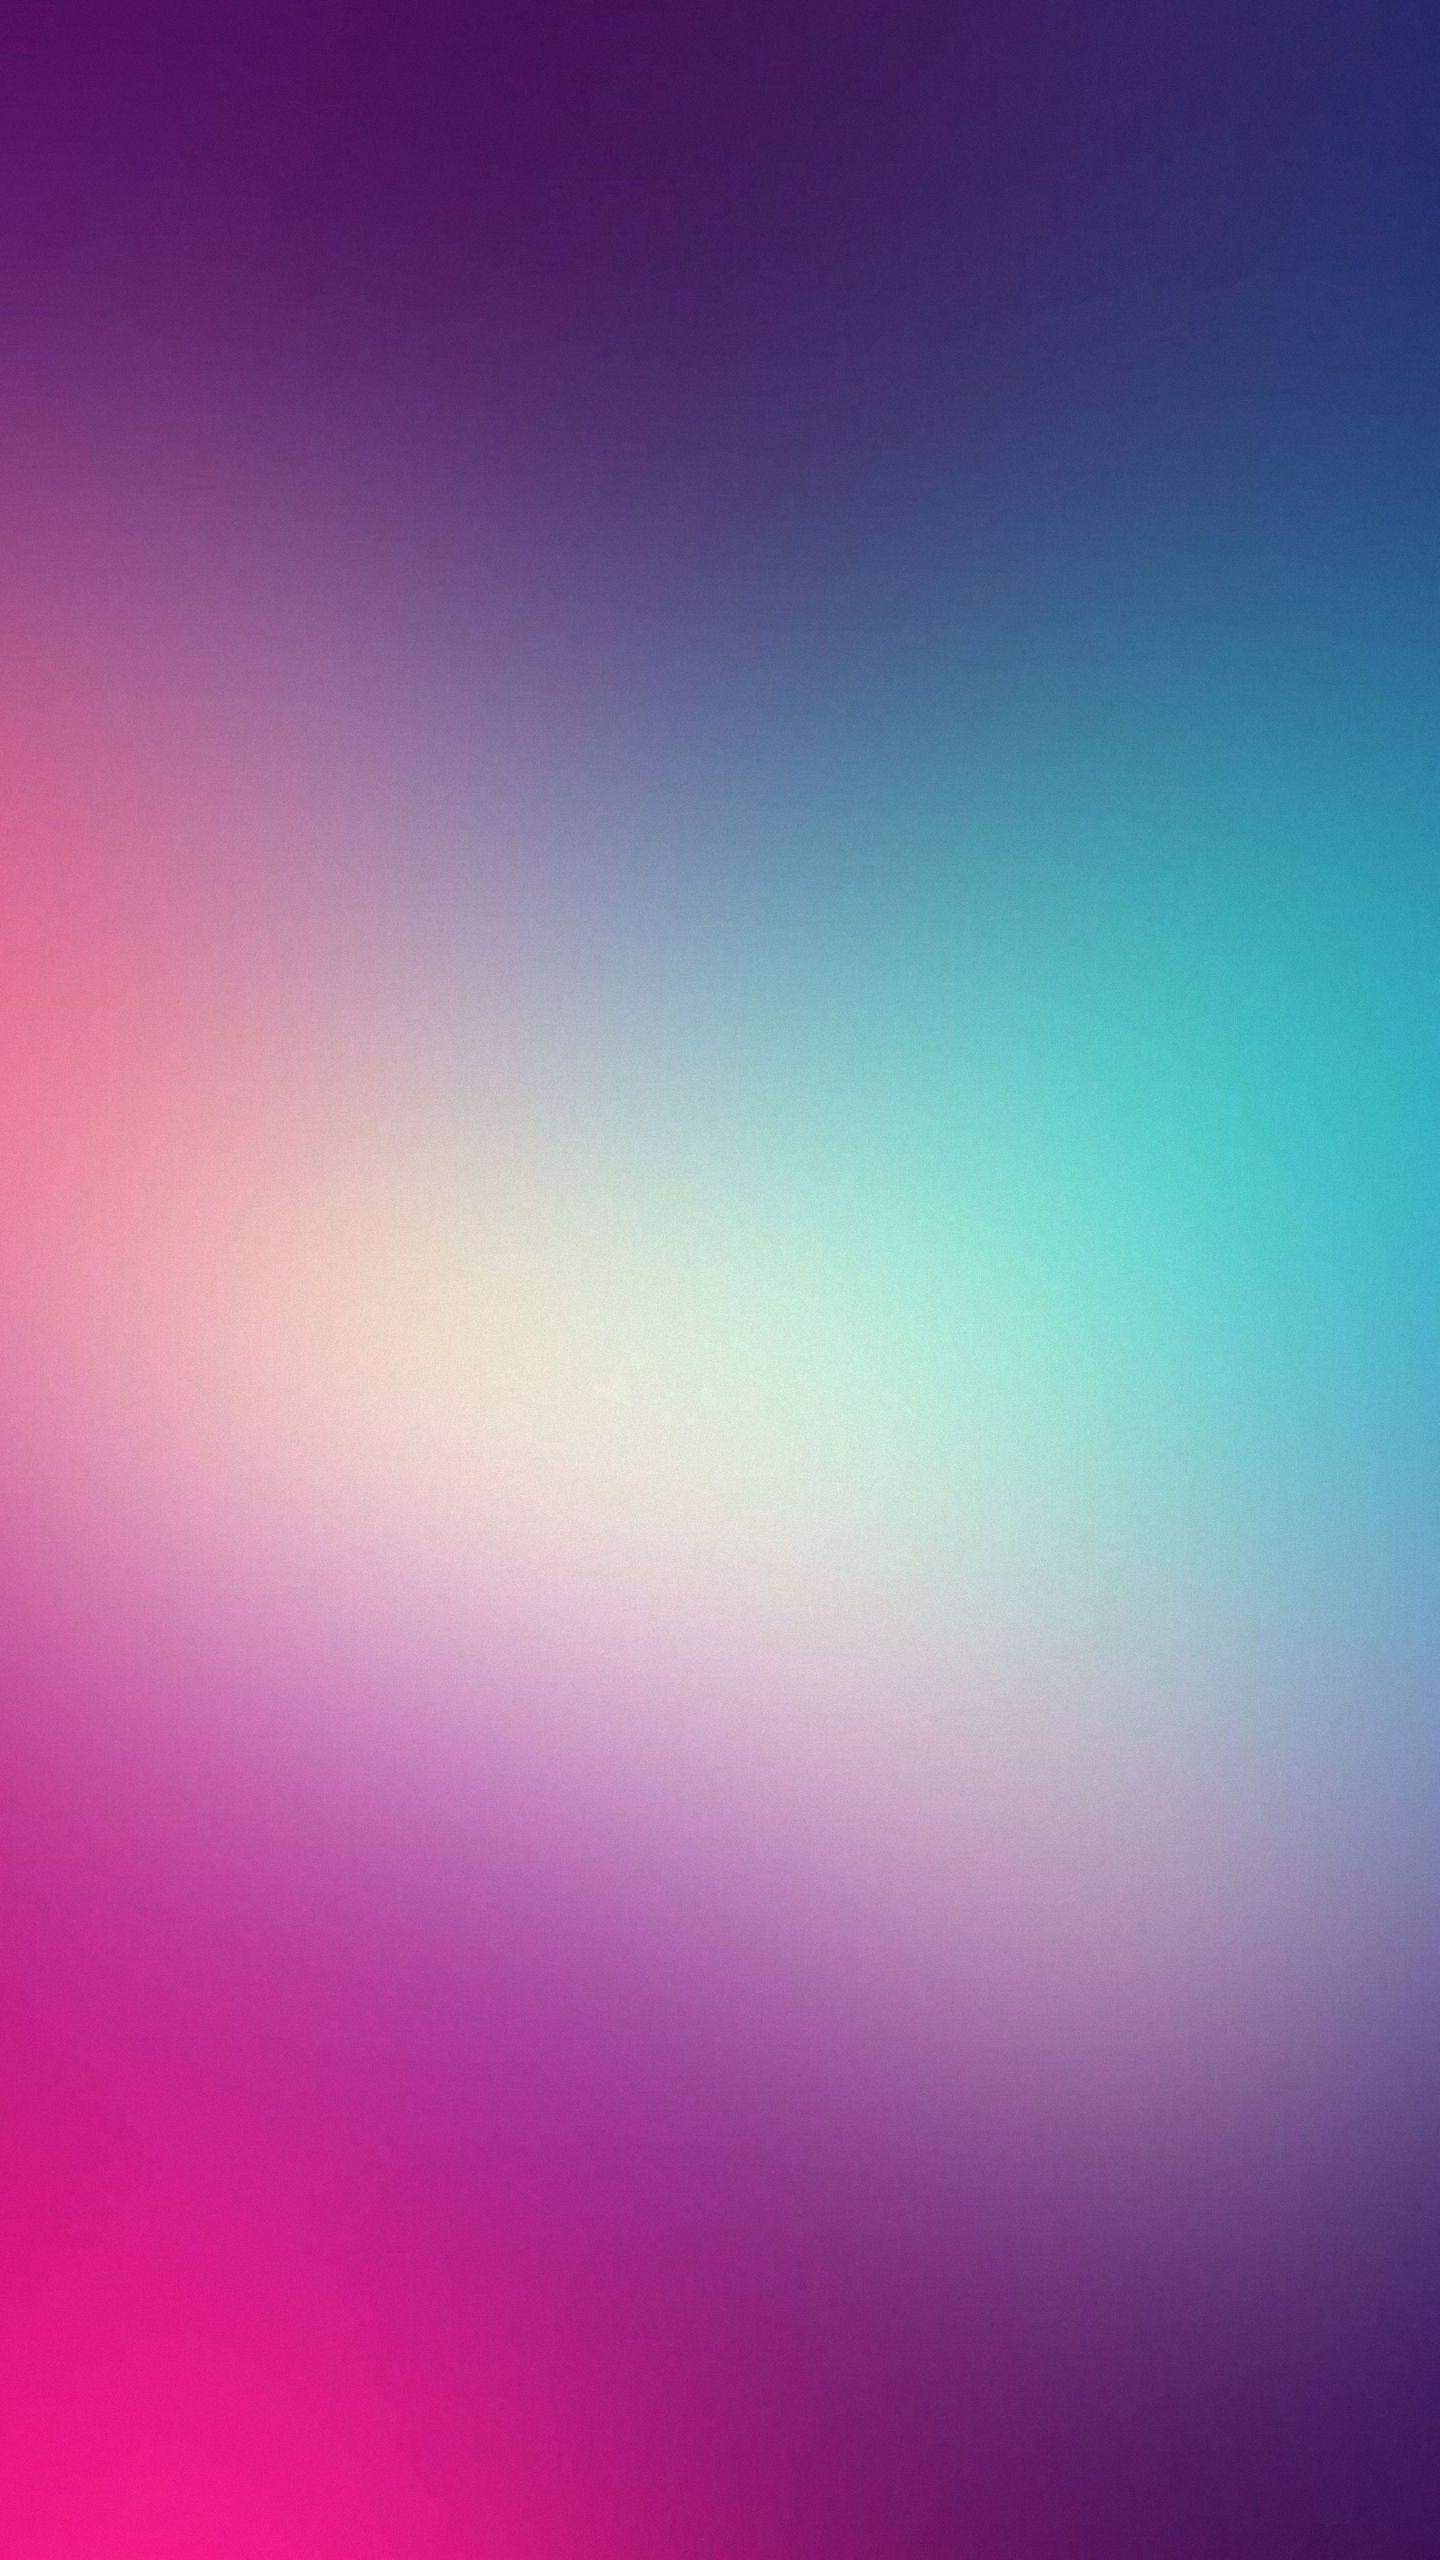 Galaxy S6 Wallpaper HD - WallpaperSafari